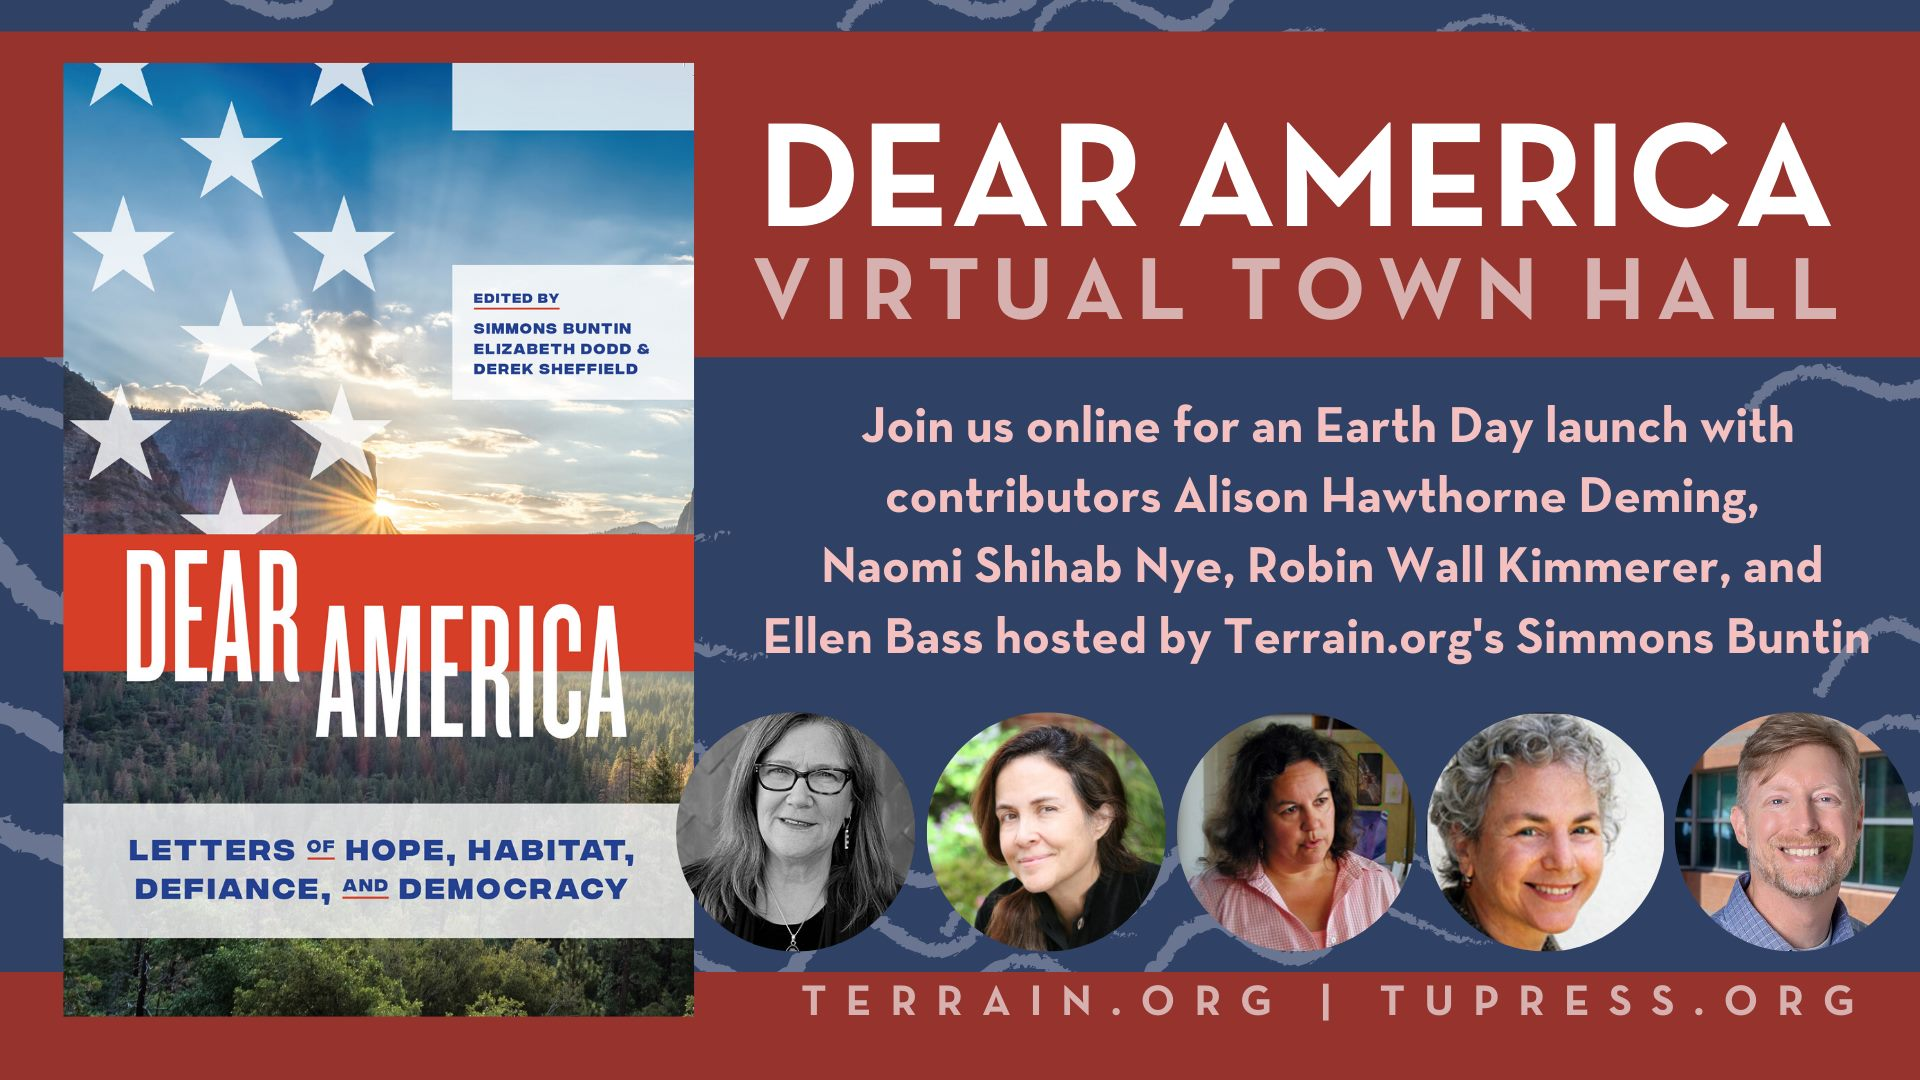 Dear America Virtual Town Hall